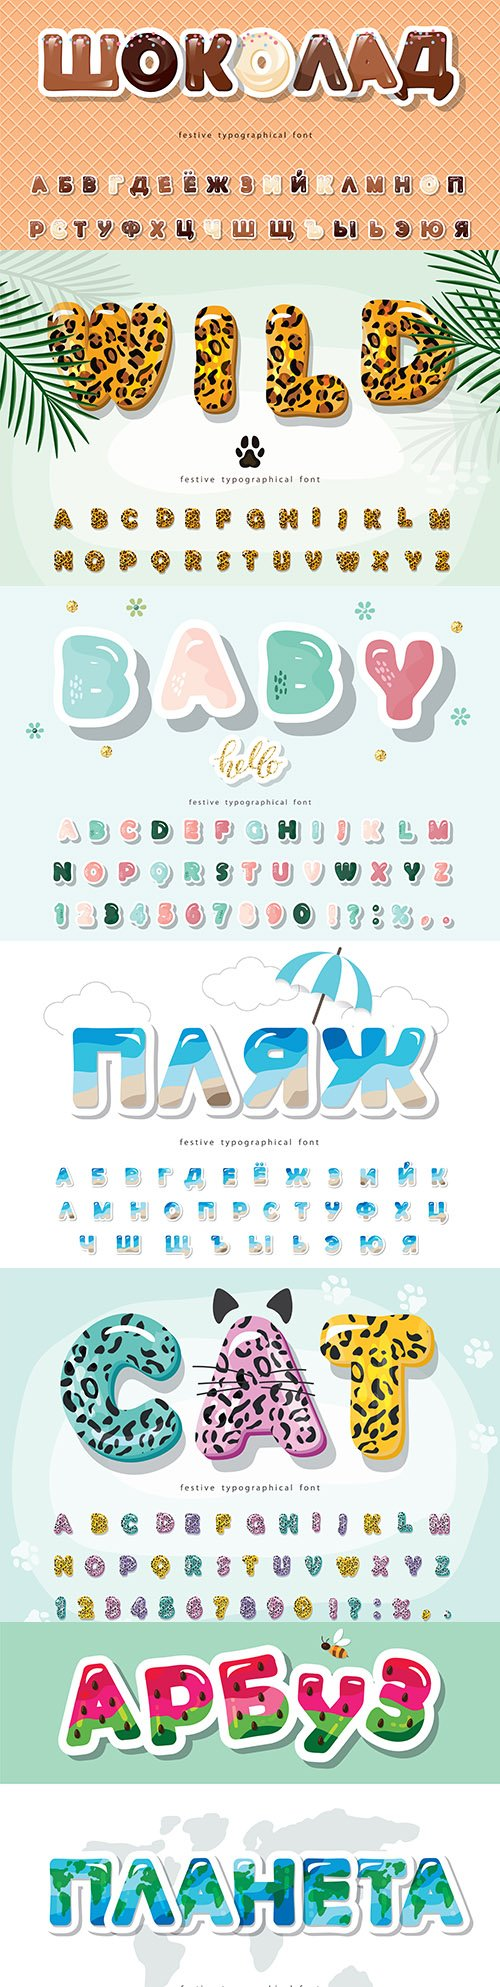 Editable font and 3d effect text design collection illustration 67